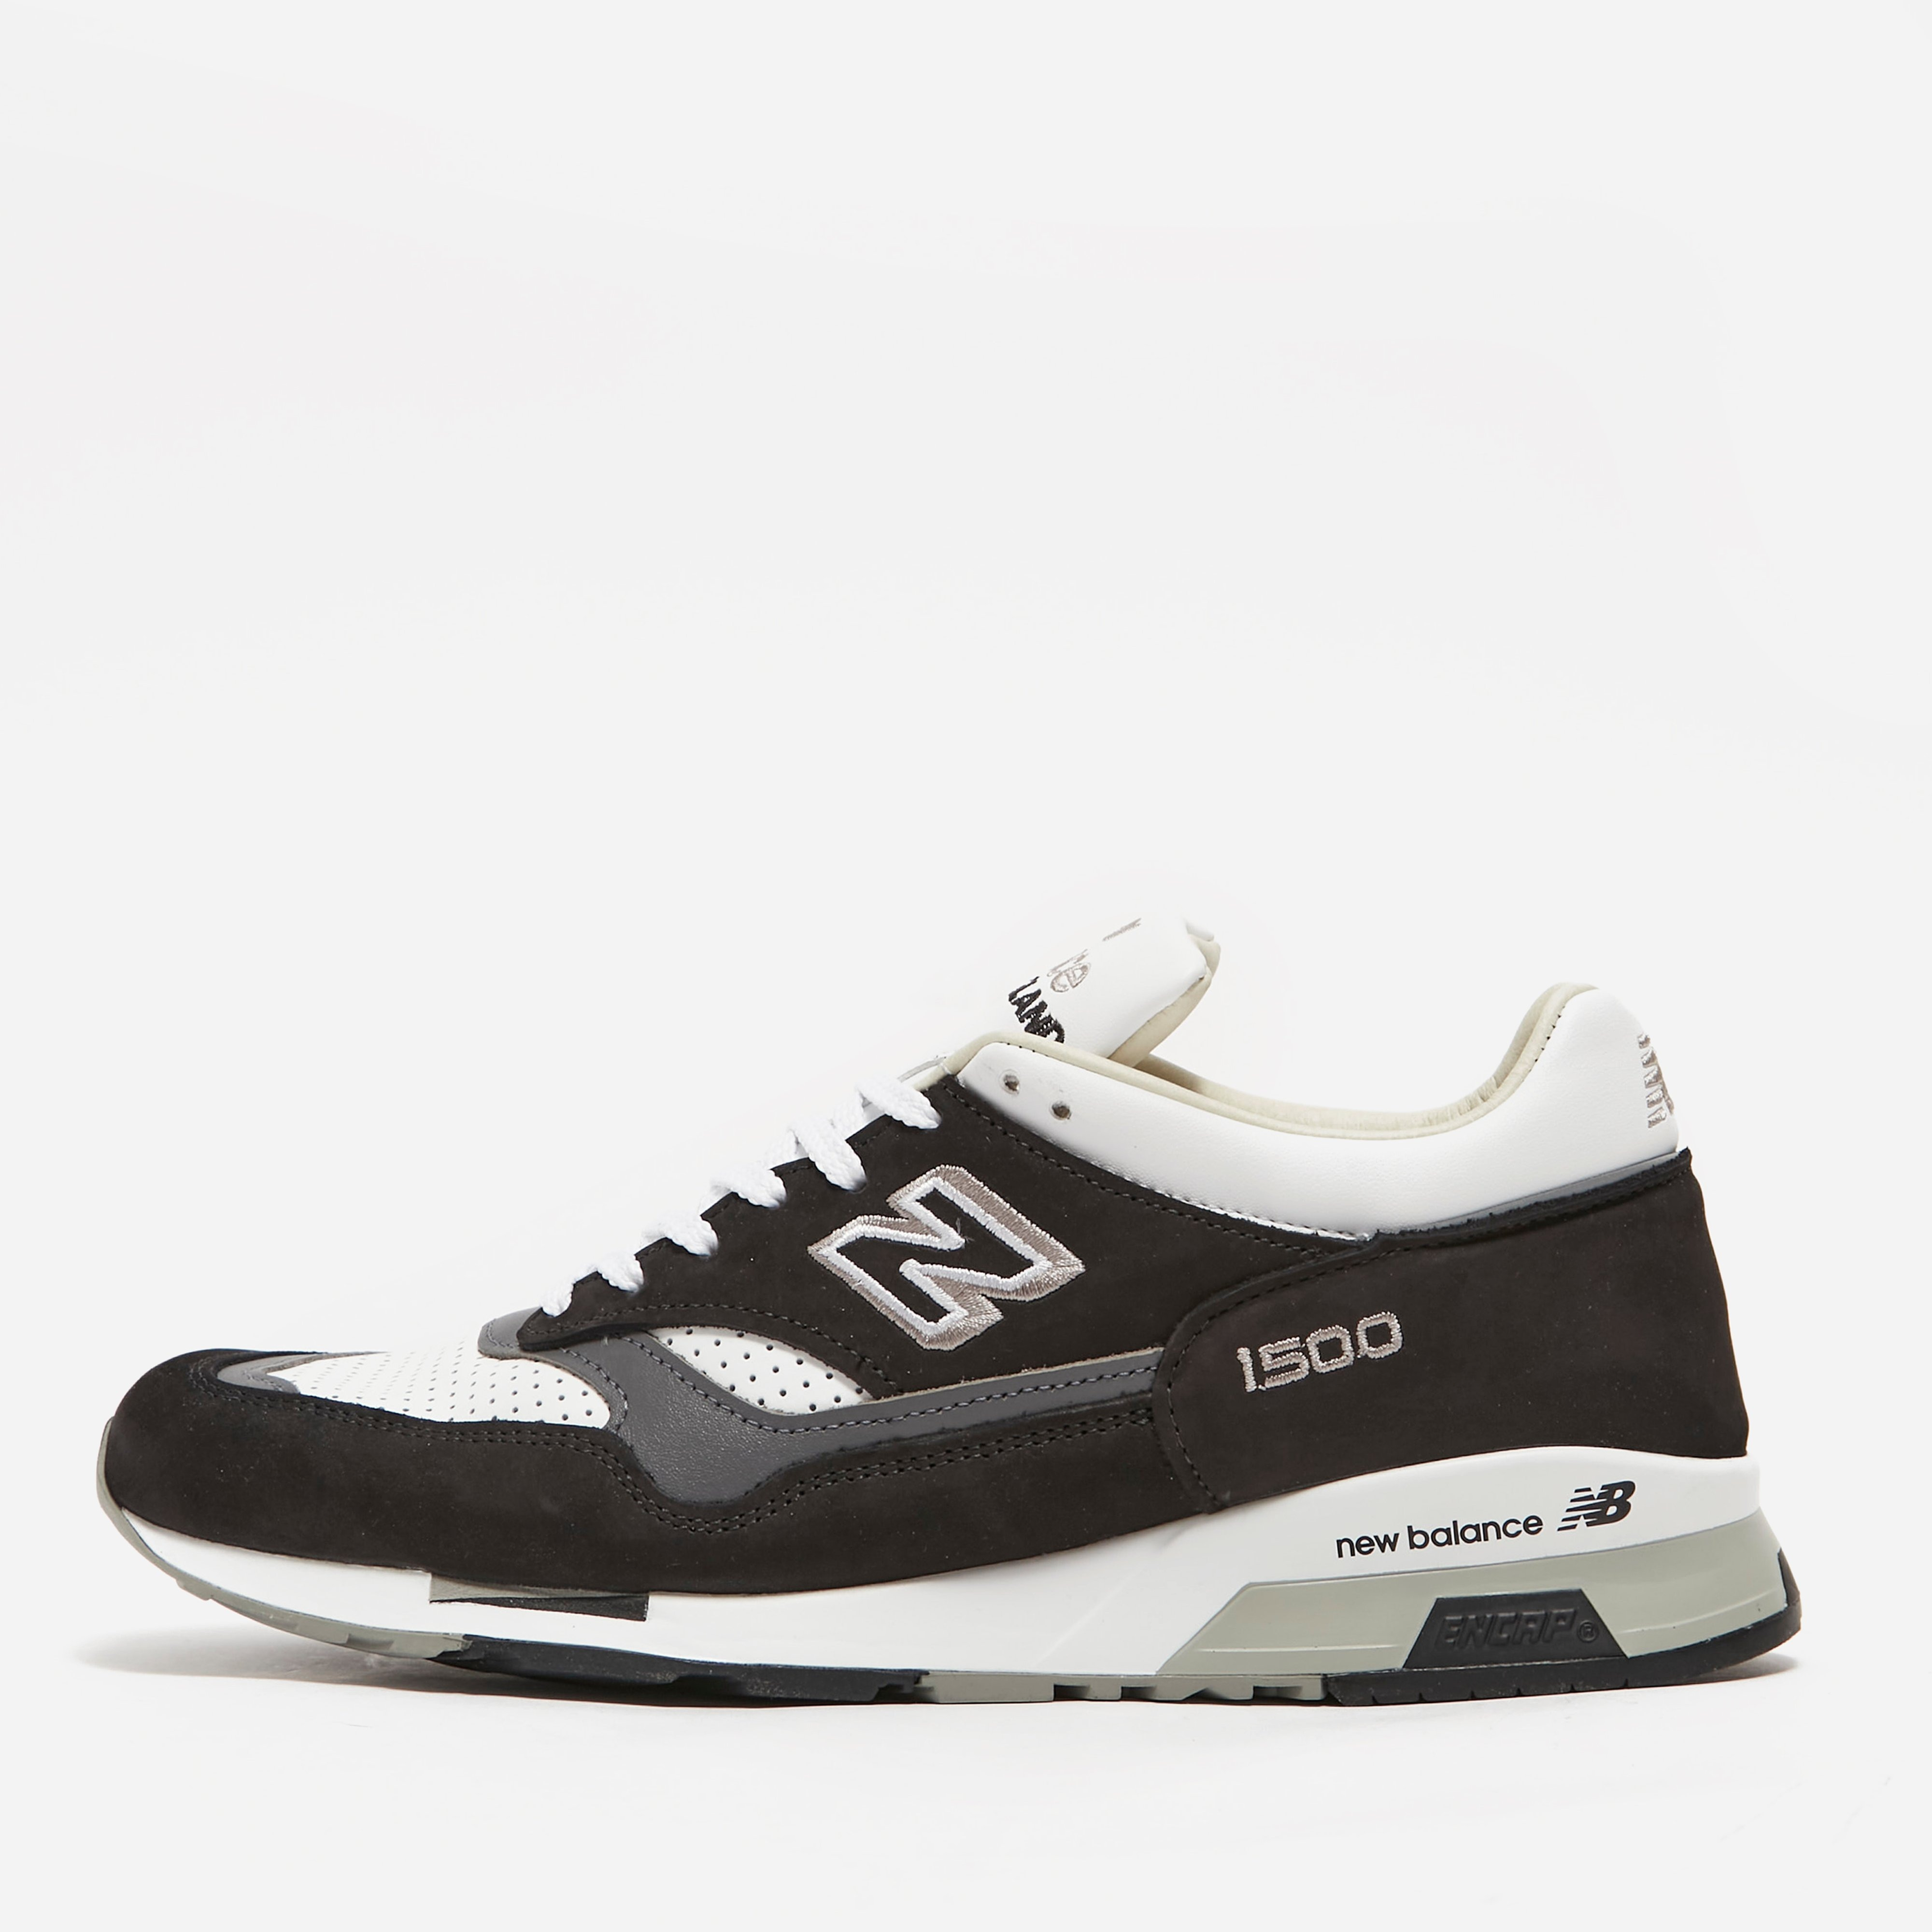 New Balance 1500 'Made in England' | The Hip Store